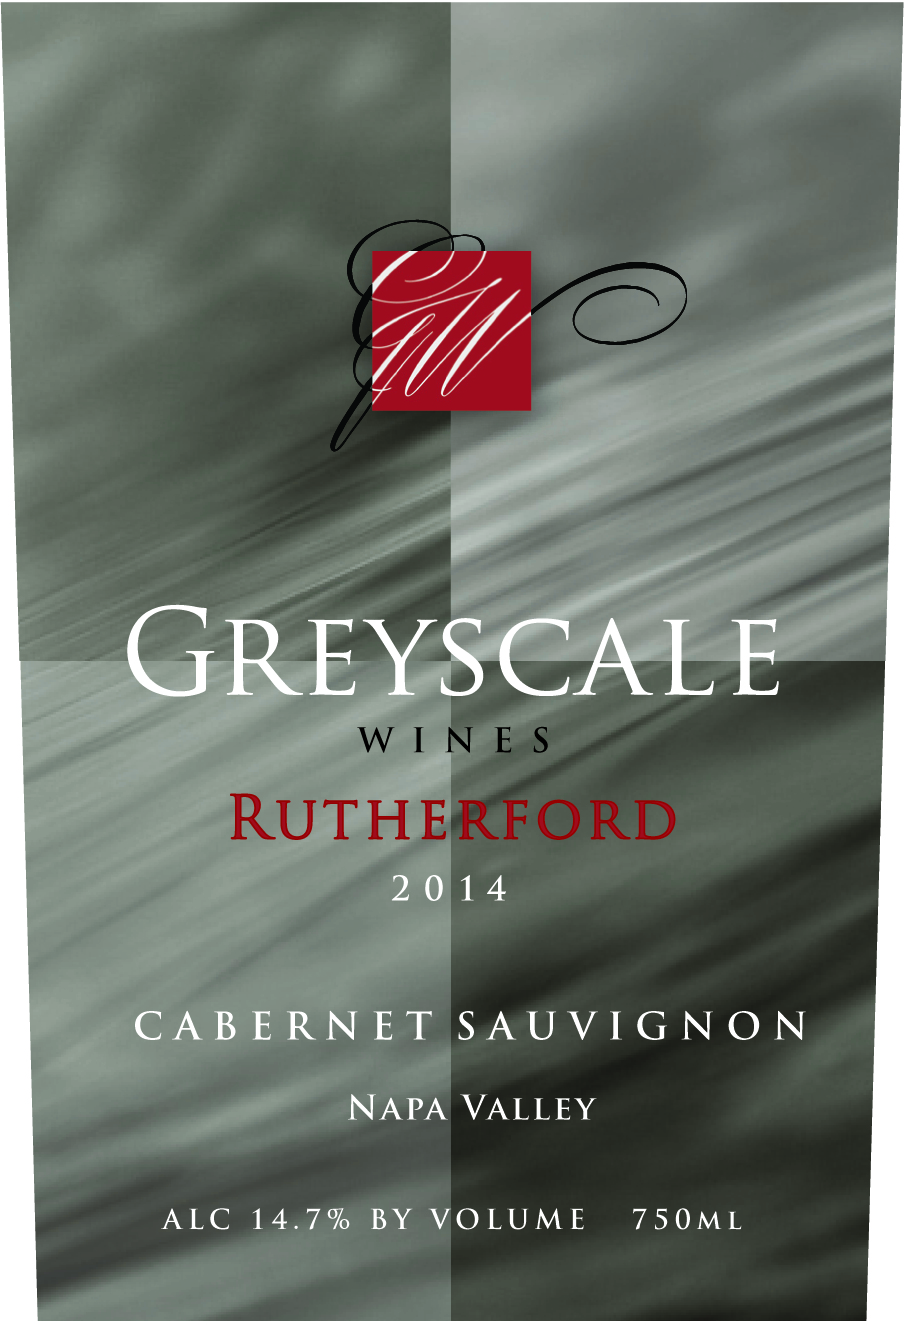 2014 Rutherford Cabernet Sauvignon - UC